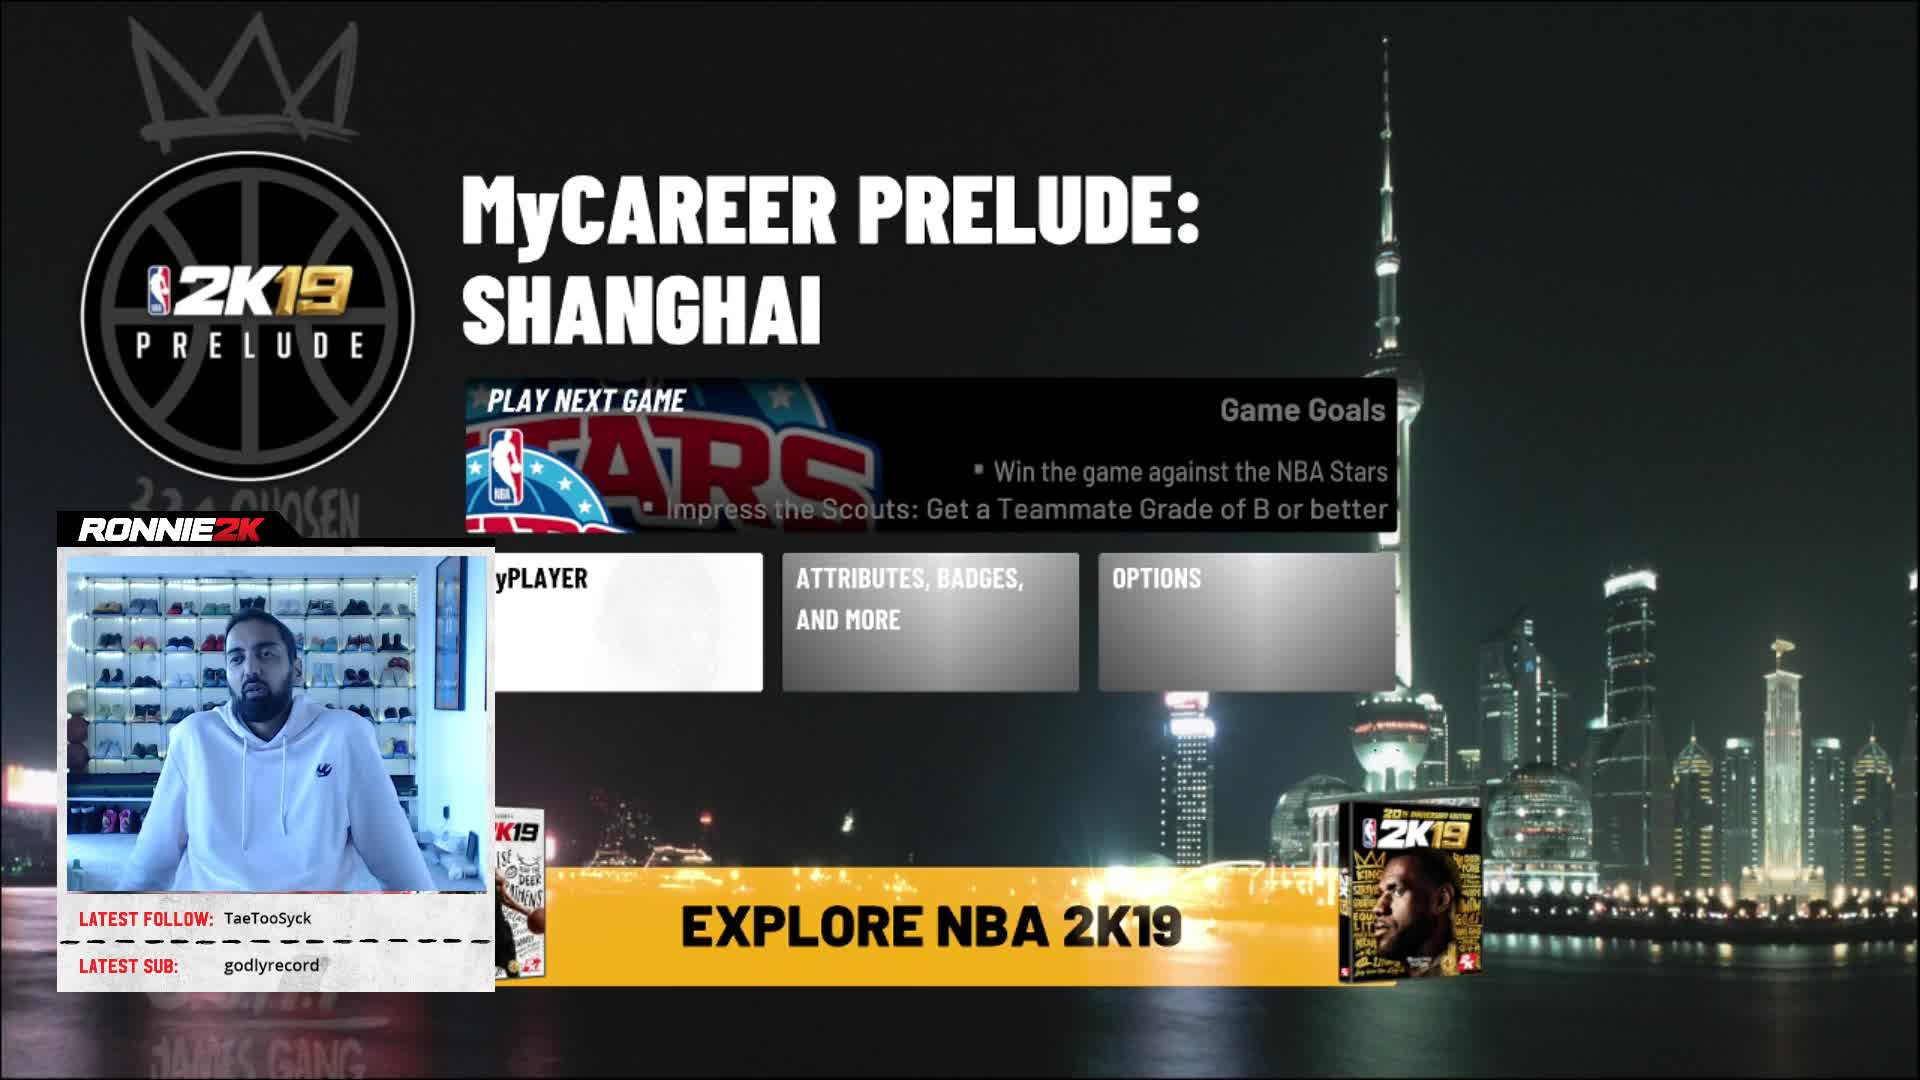 GILBERT ARENAS WILL BE IN NBA 2K19 MYTEAM!!!!! - Twitch